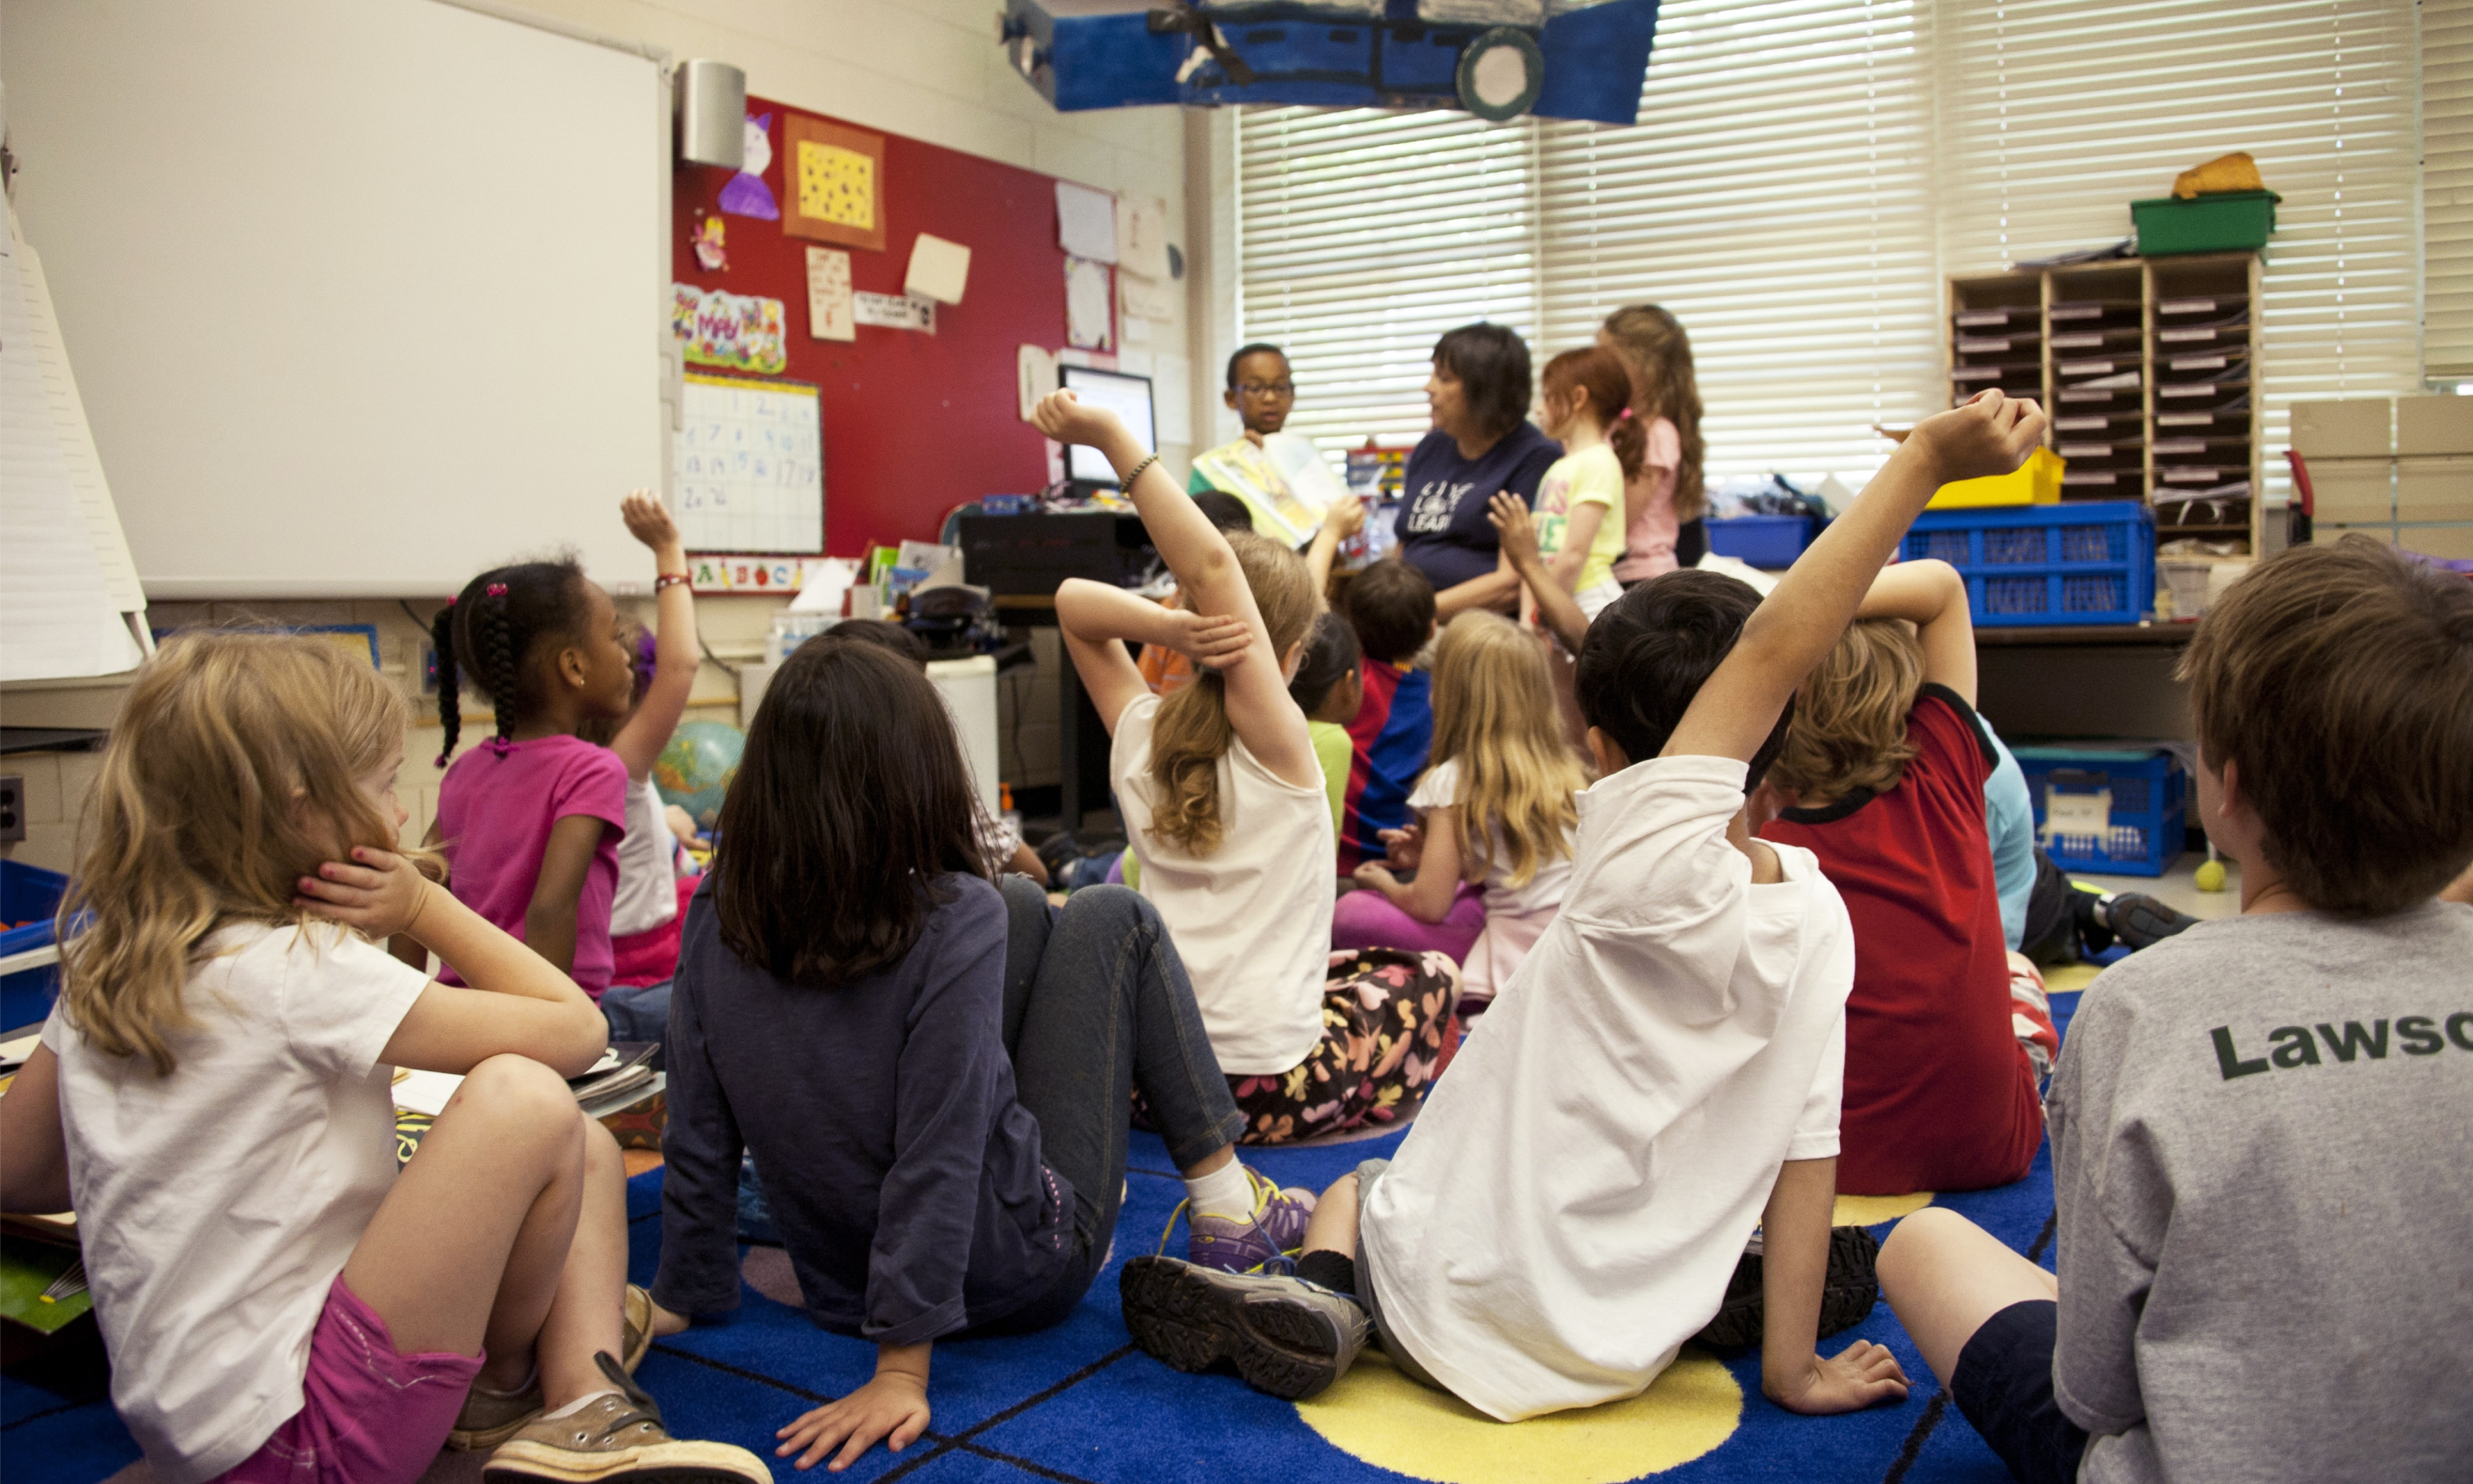 A crowded kindergarten classroom with kids raising hand to answer a teacher's question